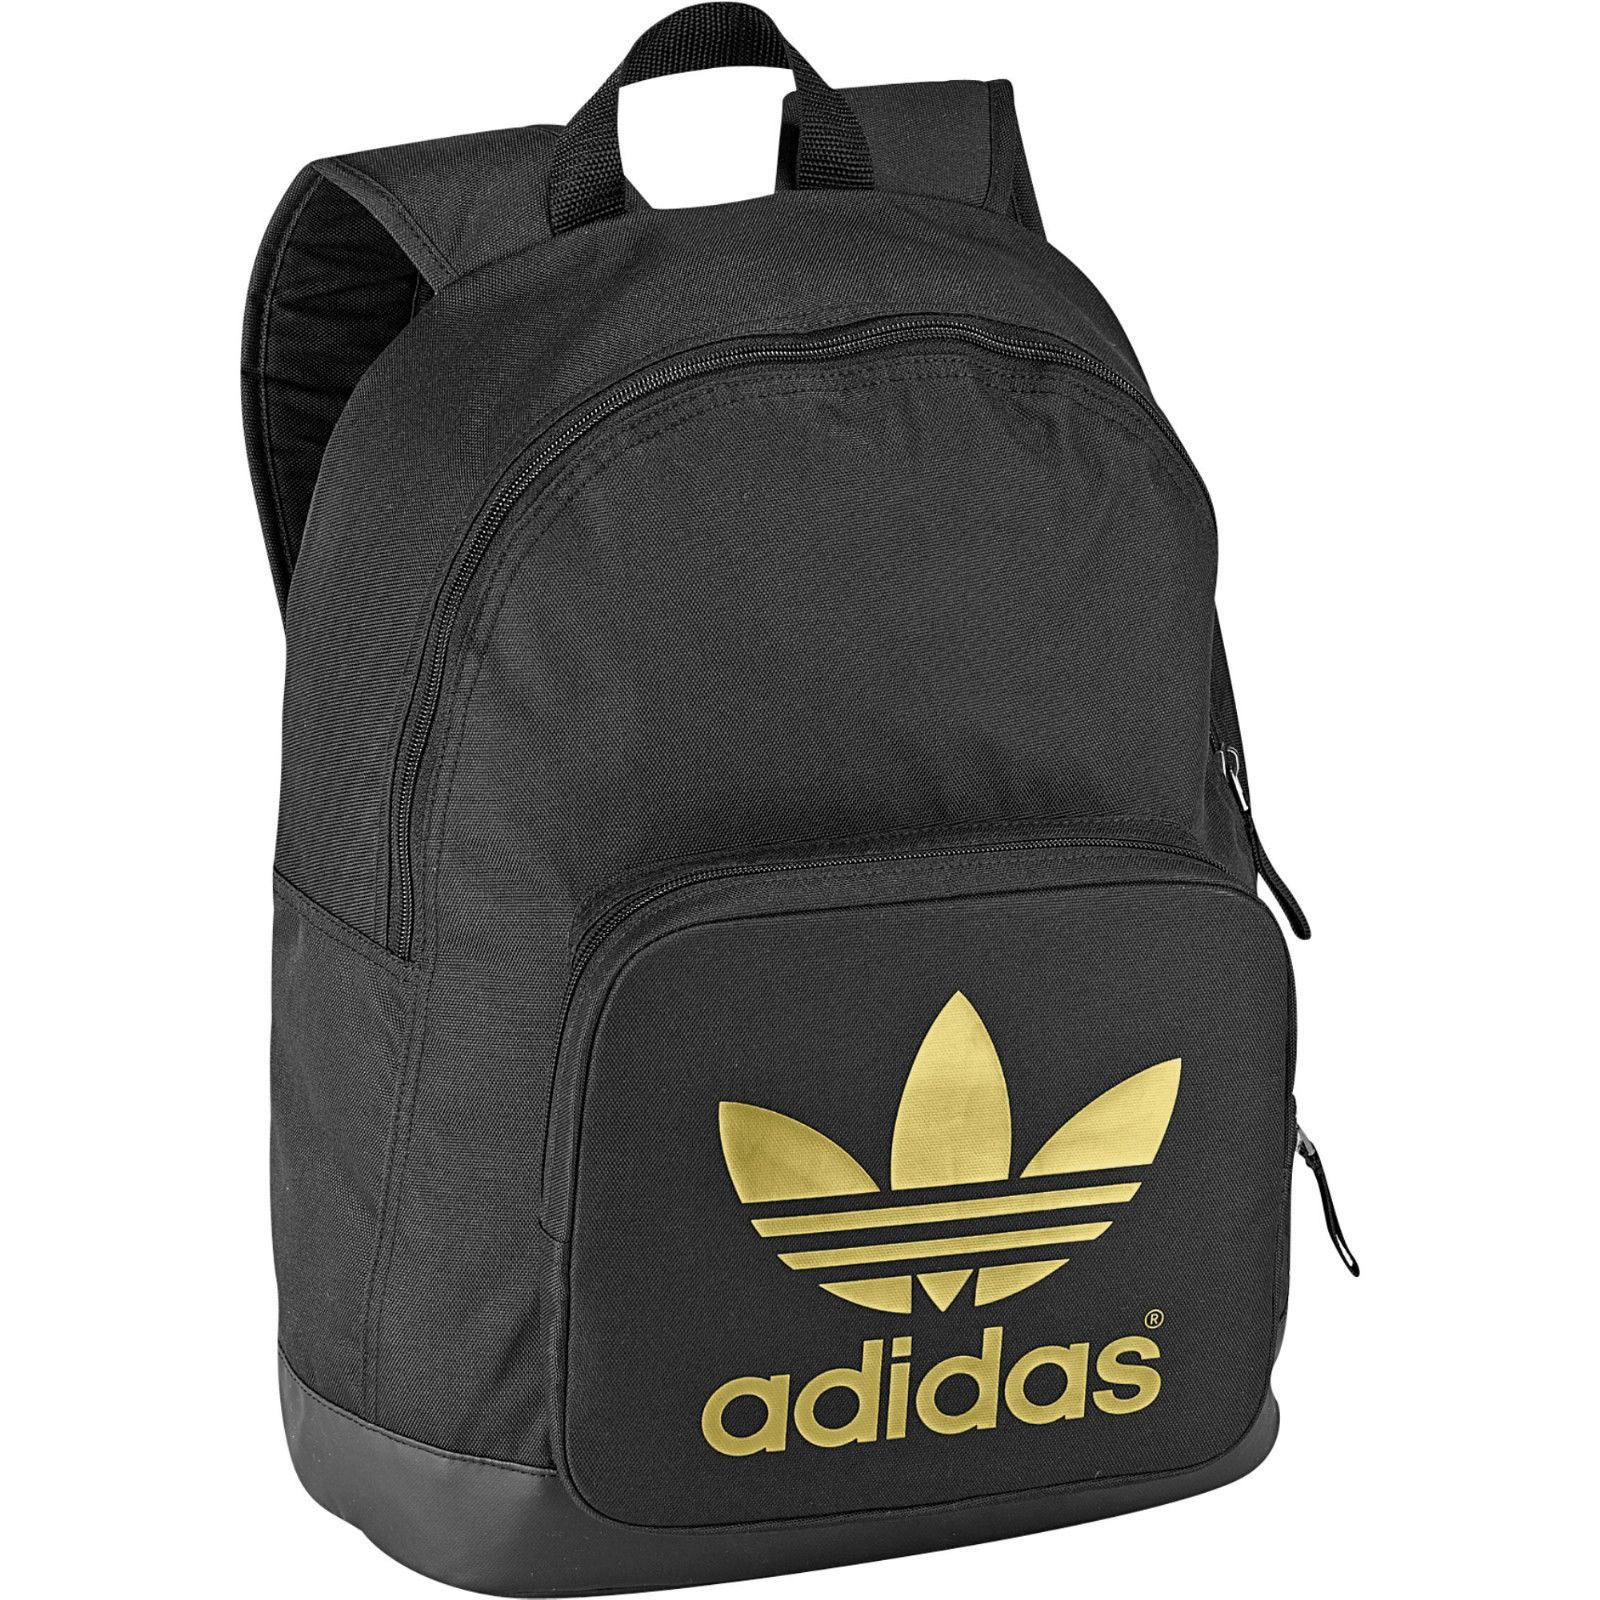 Adidas Originals Backpacks Mens Boys Girls Adidas School Backbags Rucksacks   ff6d342a9b075